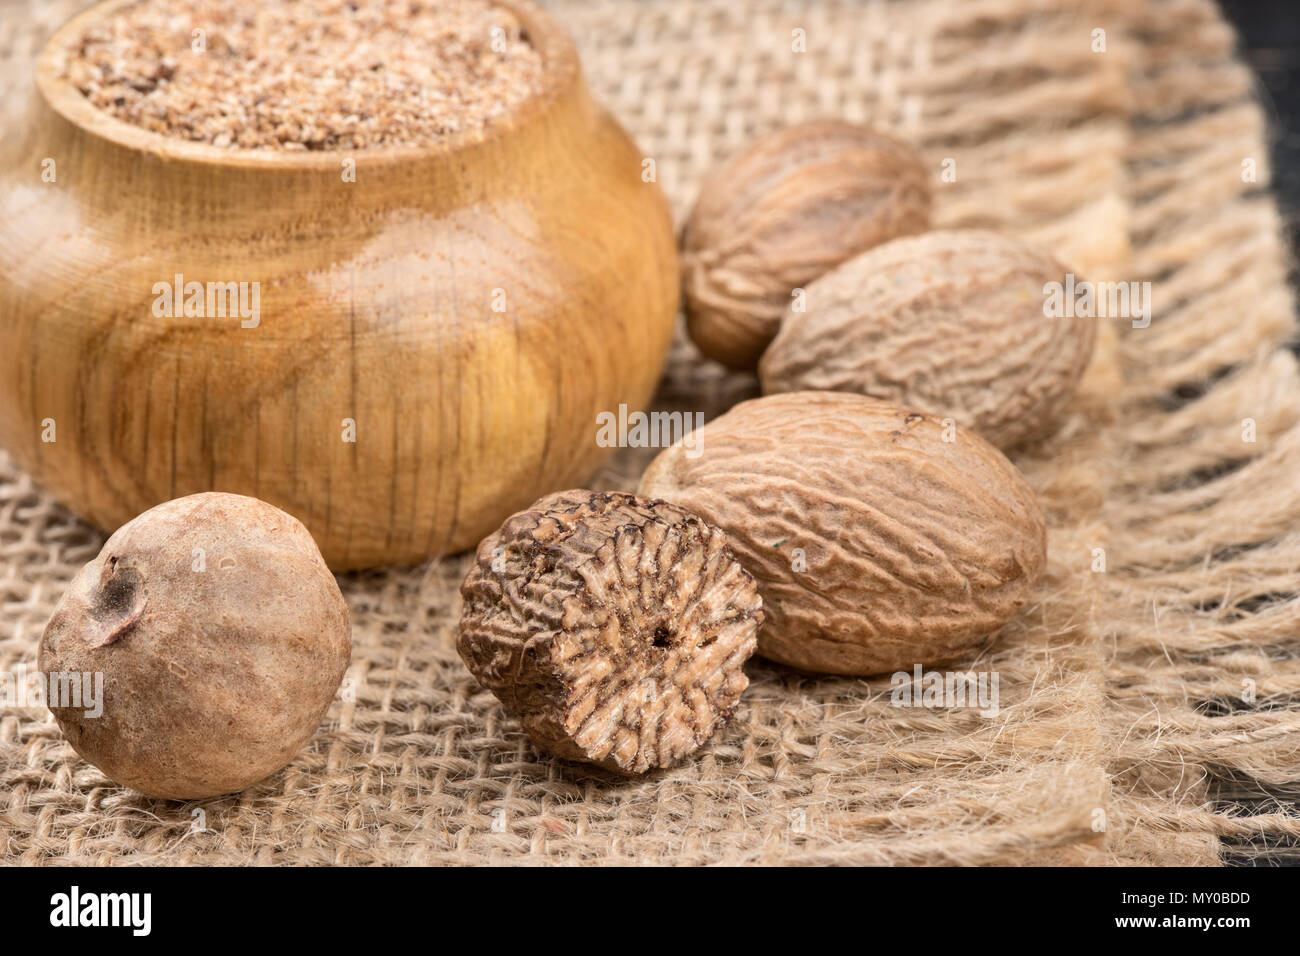 Jar with nutmeg powder and scattered with nuts on burlap - Stock Image